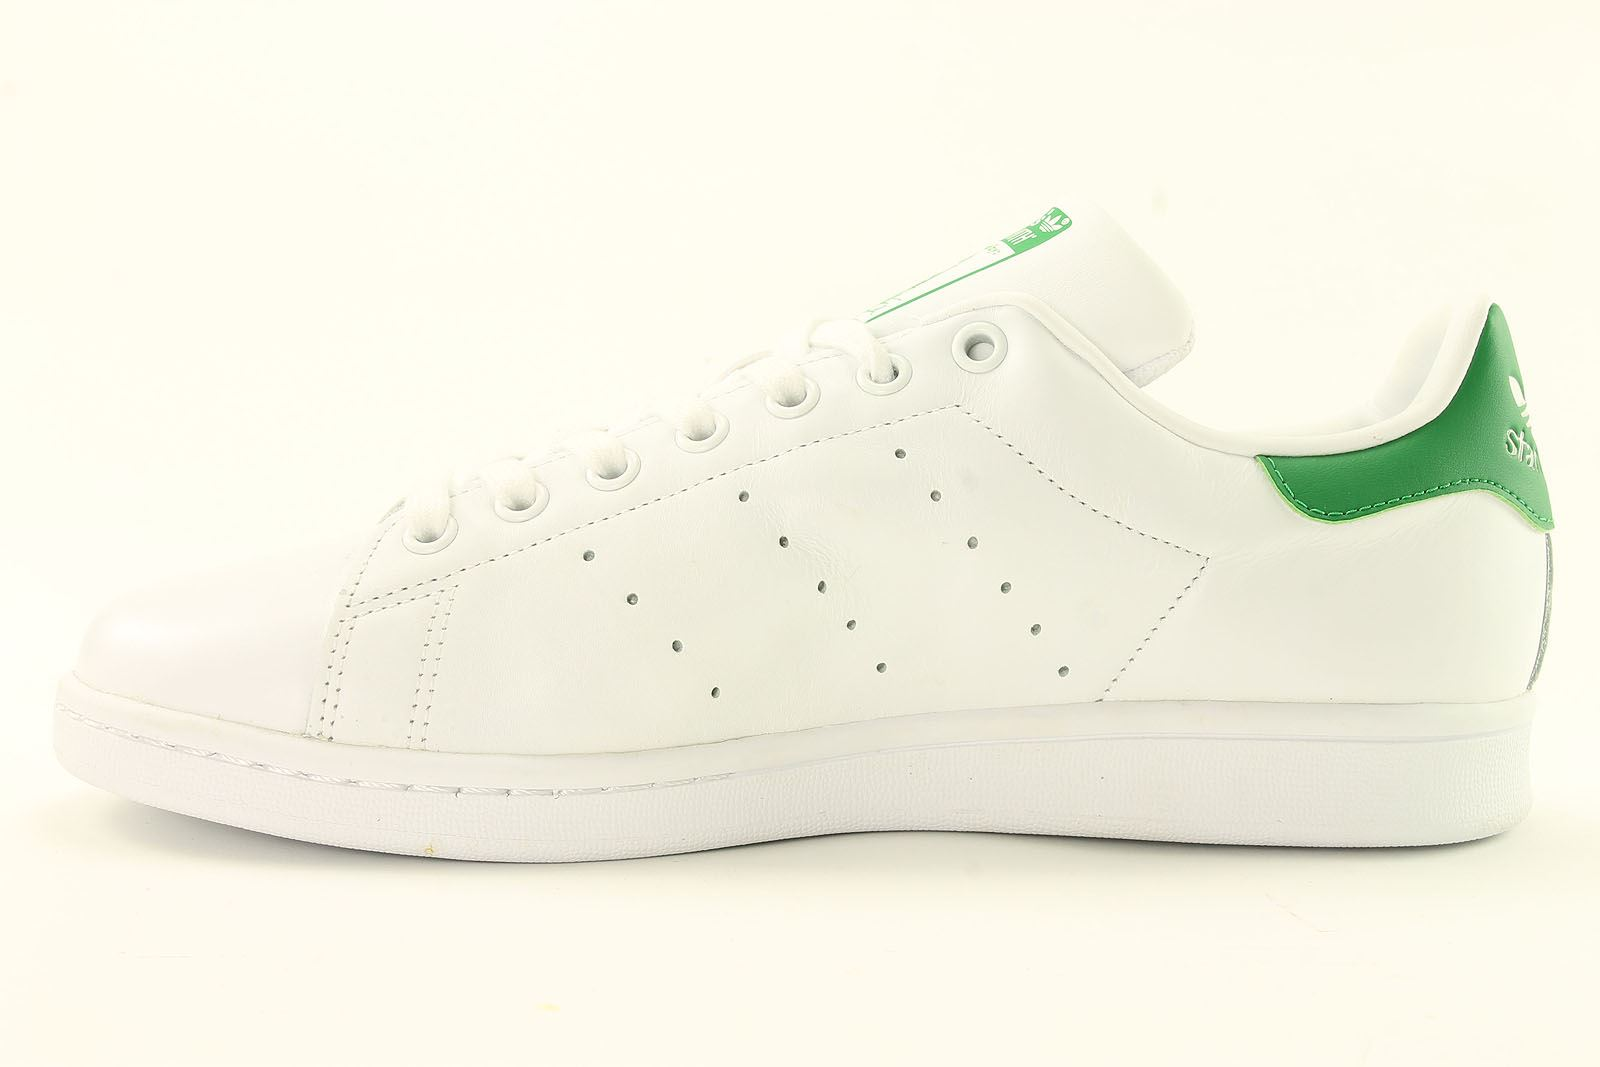 adidas-Stan-Smith-Mens-Trainers-Originals-RRP-69-99-UK-Seller thumbnail 11